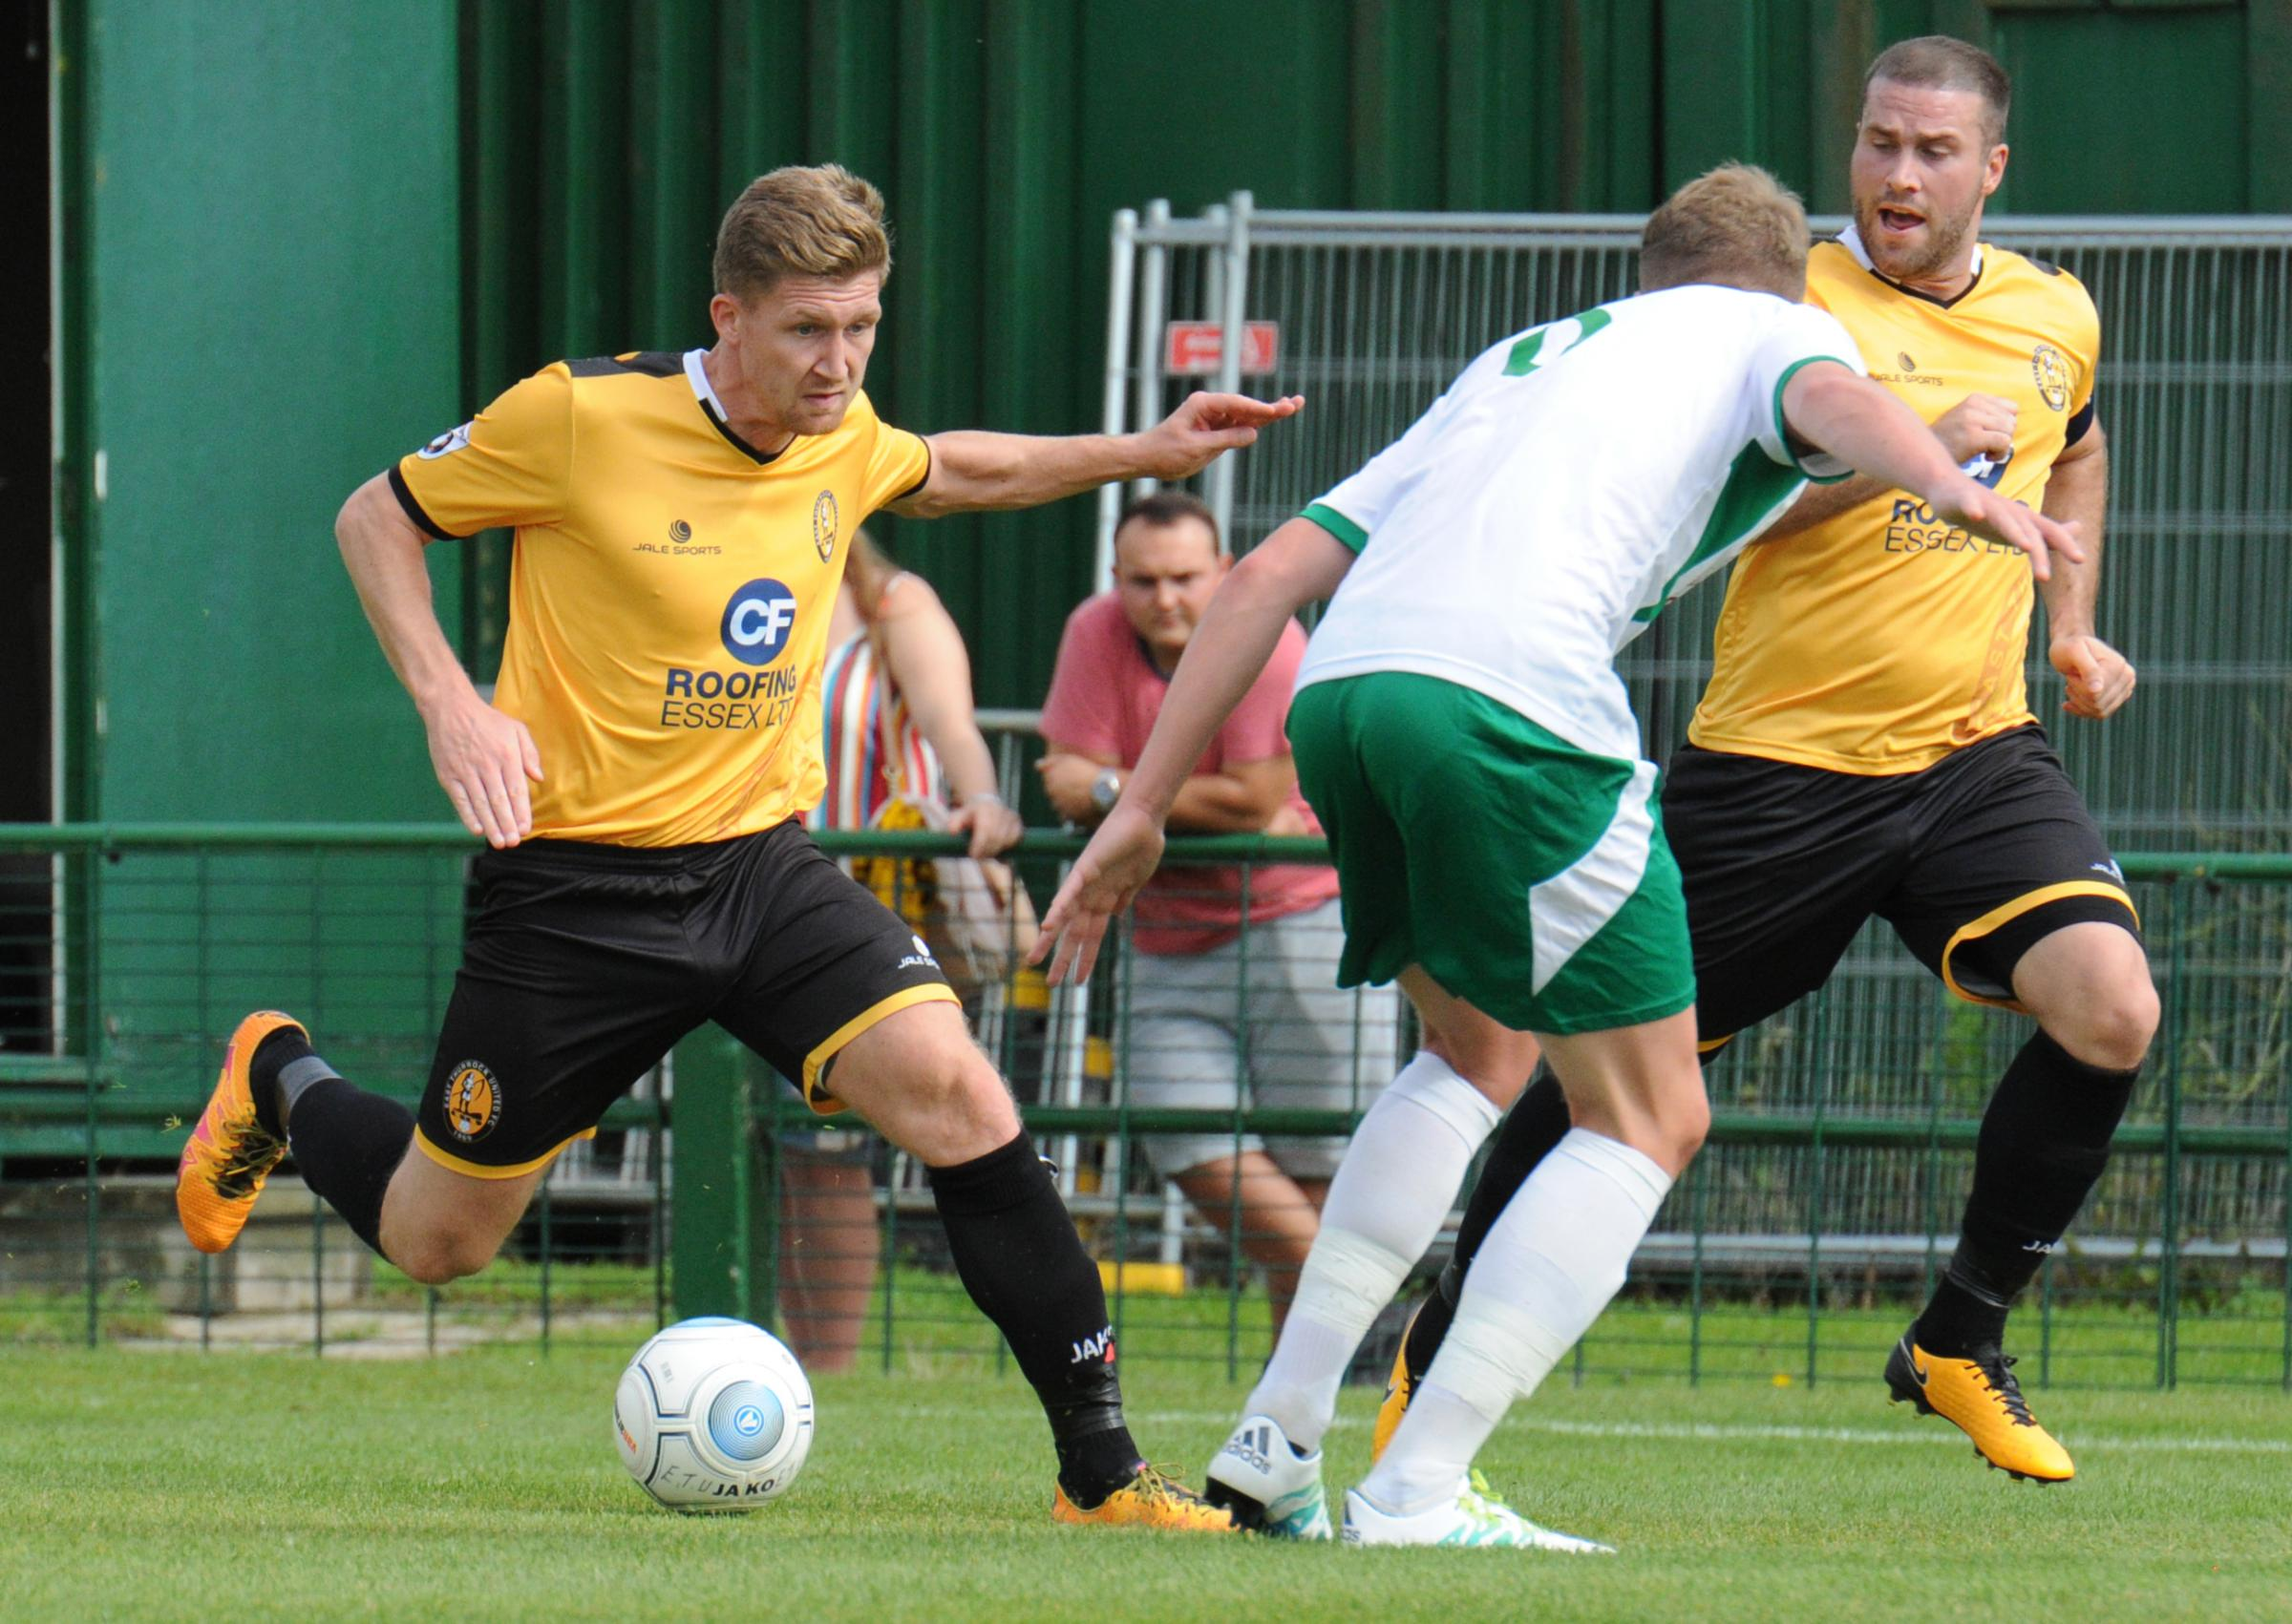 Return - Lewis Smith could line up for East Thurrock